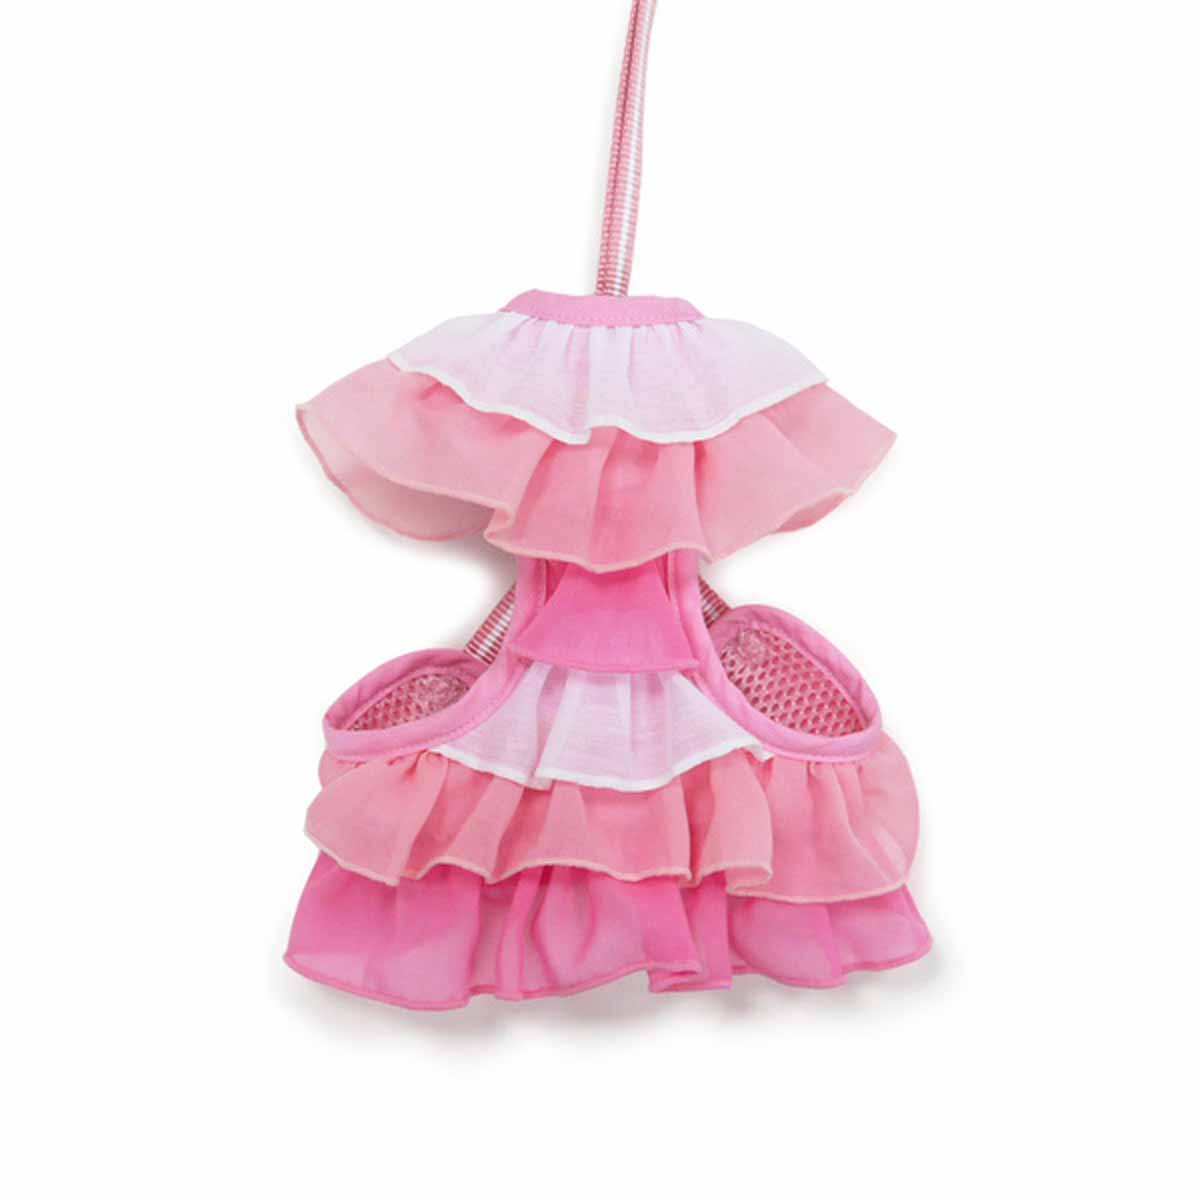 EasyGo Multi Ruffle Dog Harness by Dogo - Pink